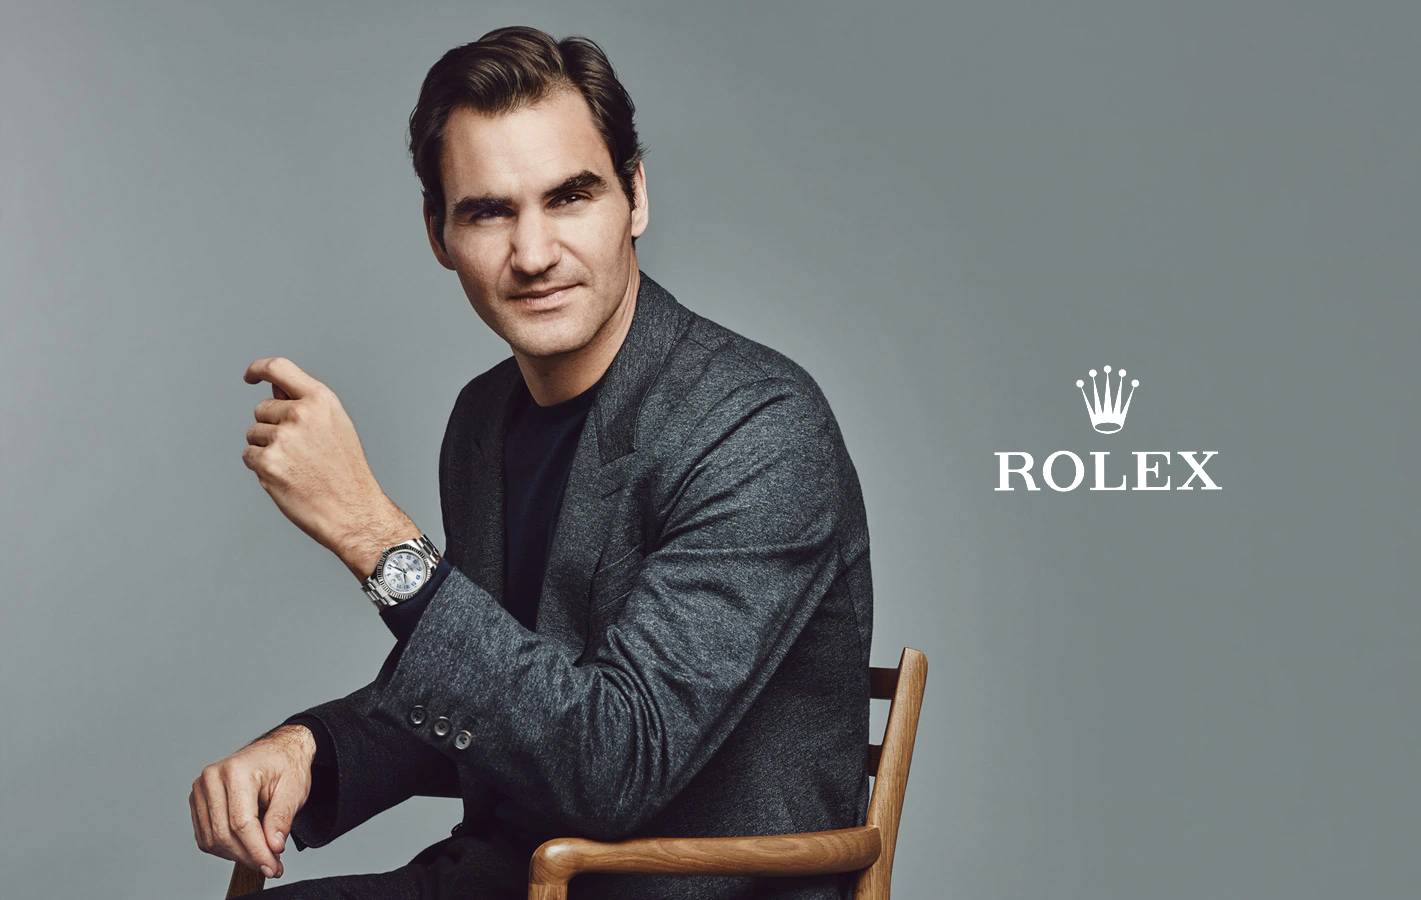 Rolex is a premium brand of Watches of Switzerland.